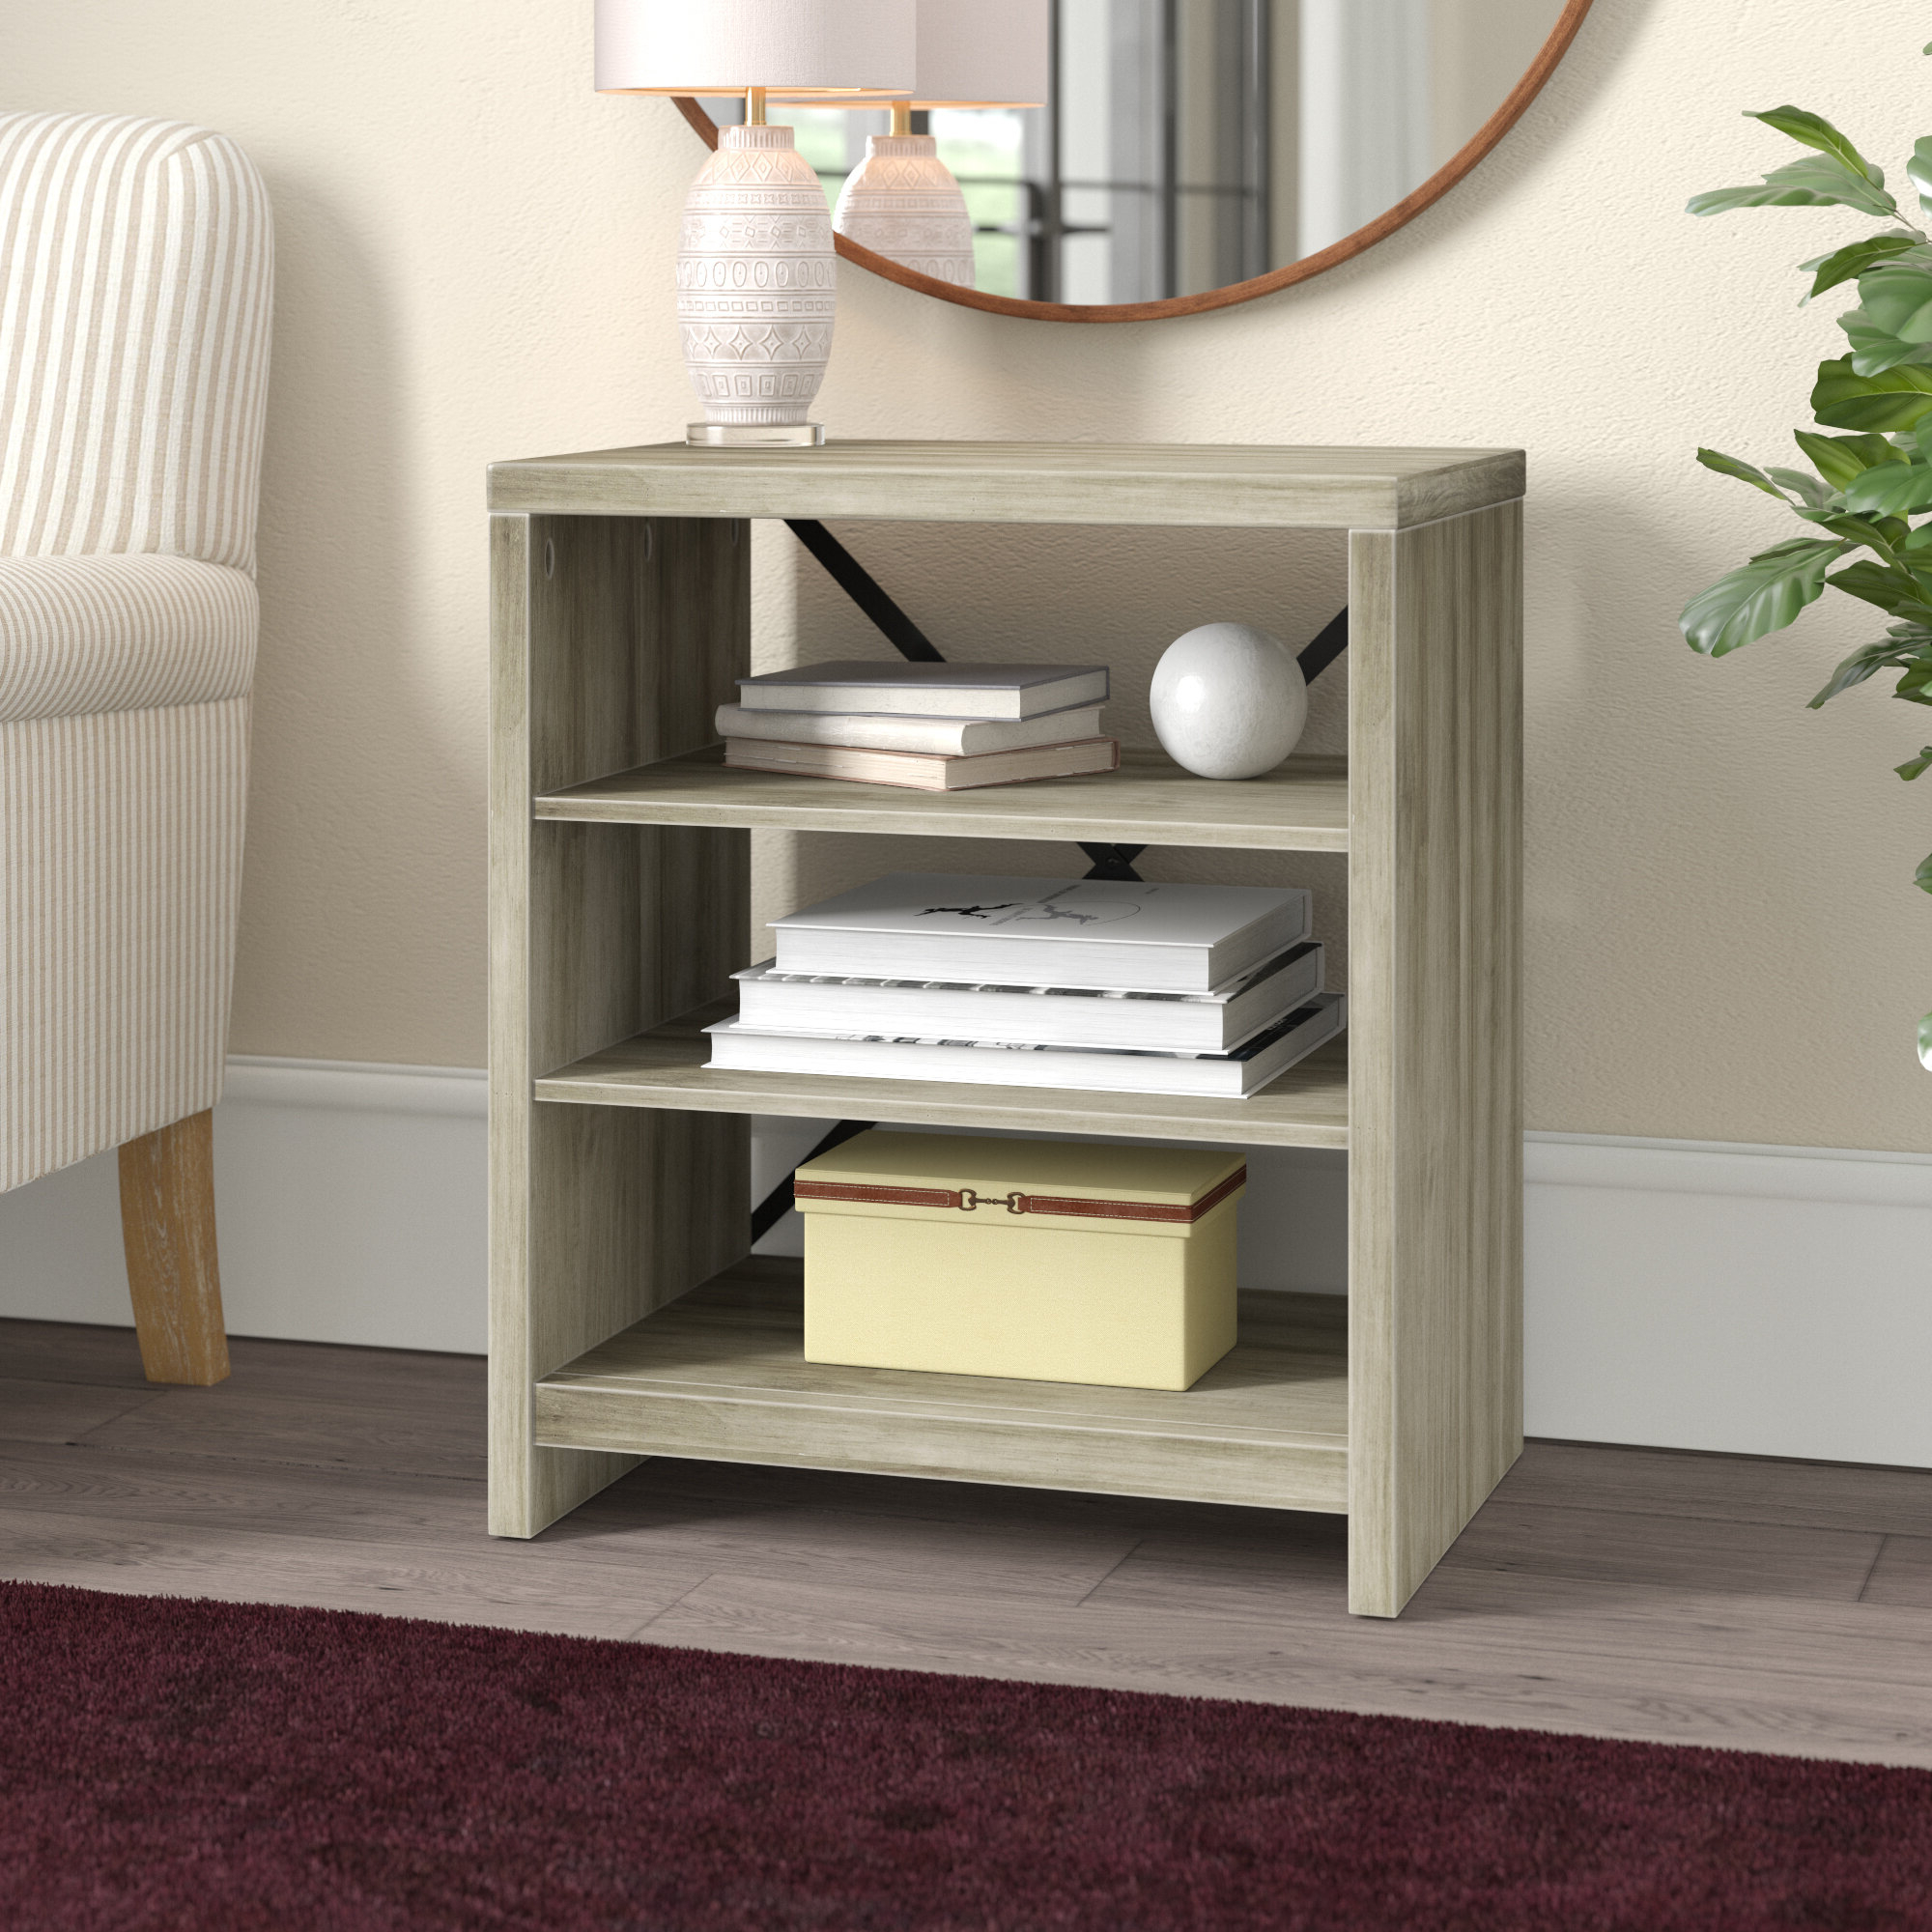 Laguna Standard Bookcase Intended For Best And Newest Kronqui Standard Bookcases (View 9 of 20)